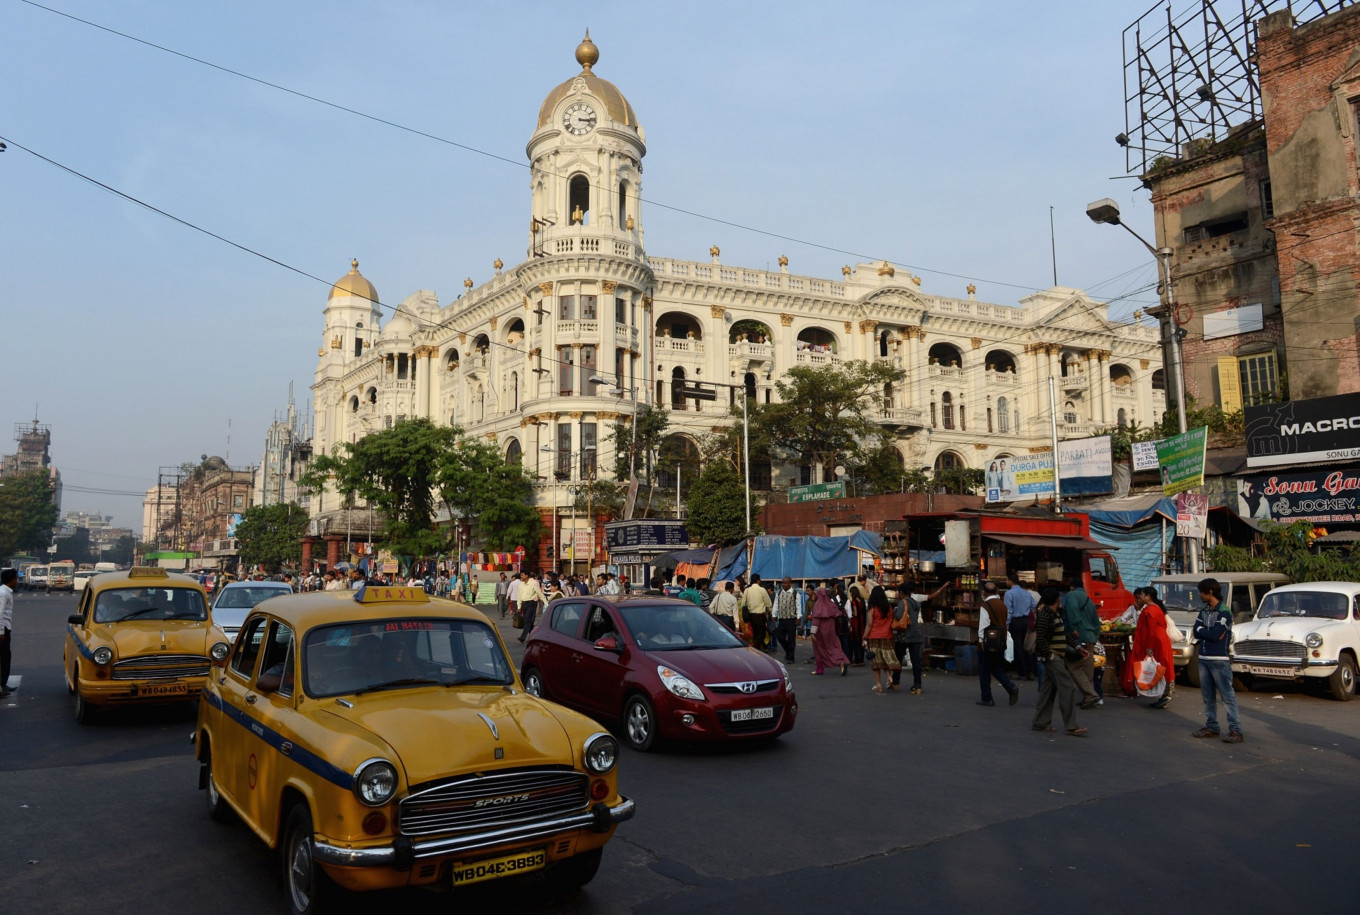 Forget the Taj Mahal and pink Jaipur, take me to the chaos of Kolkata